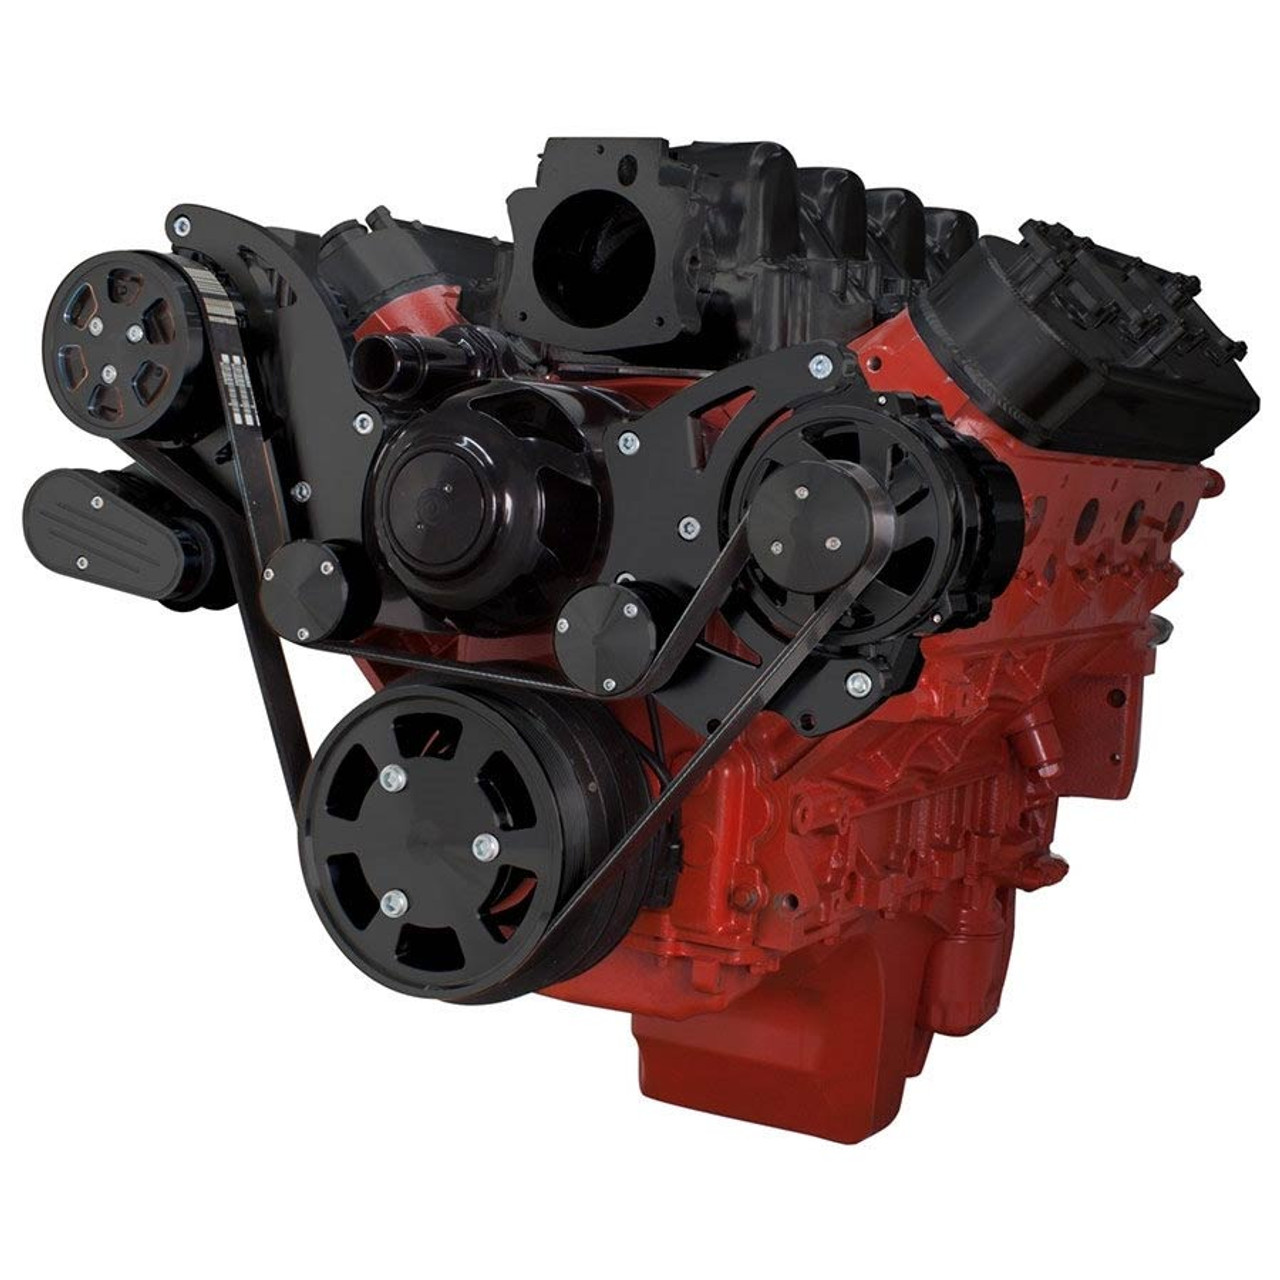 hight resolution of stealth black chevy ls engine serpentine kit alternator only with electric water pump